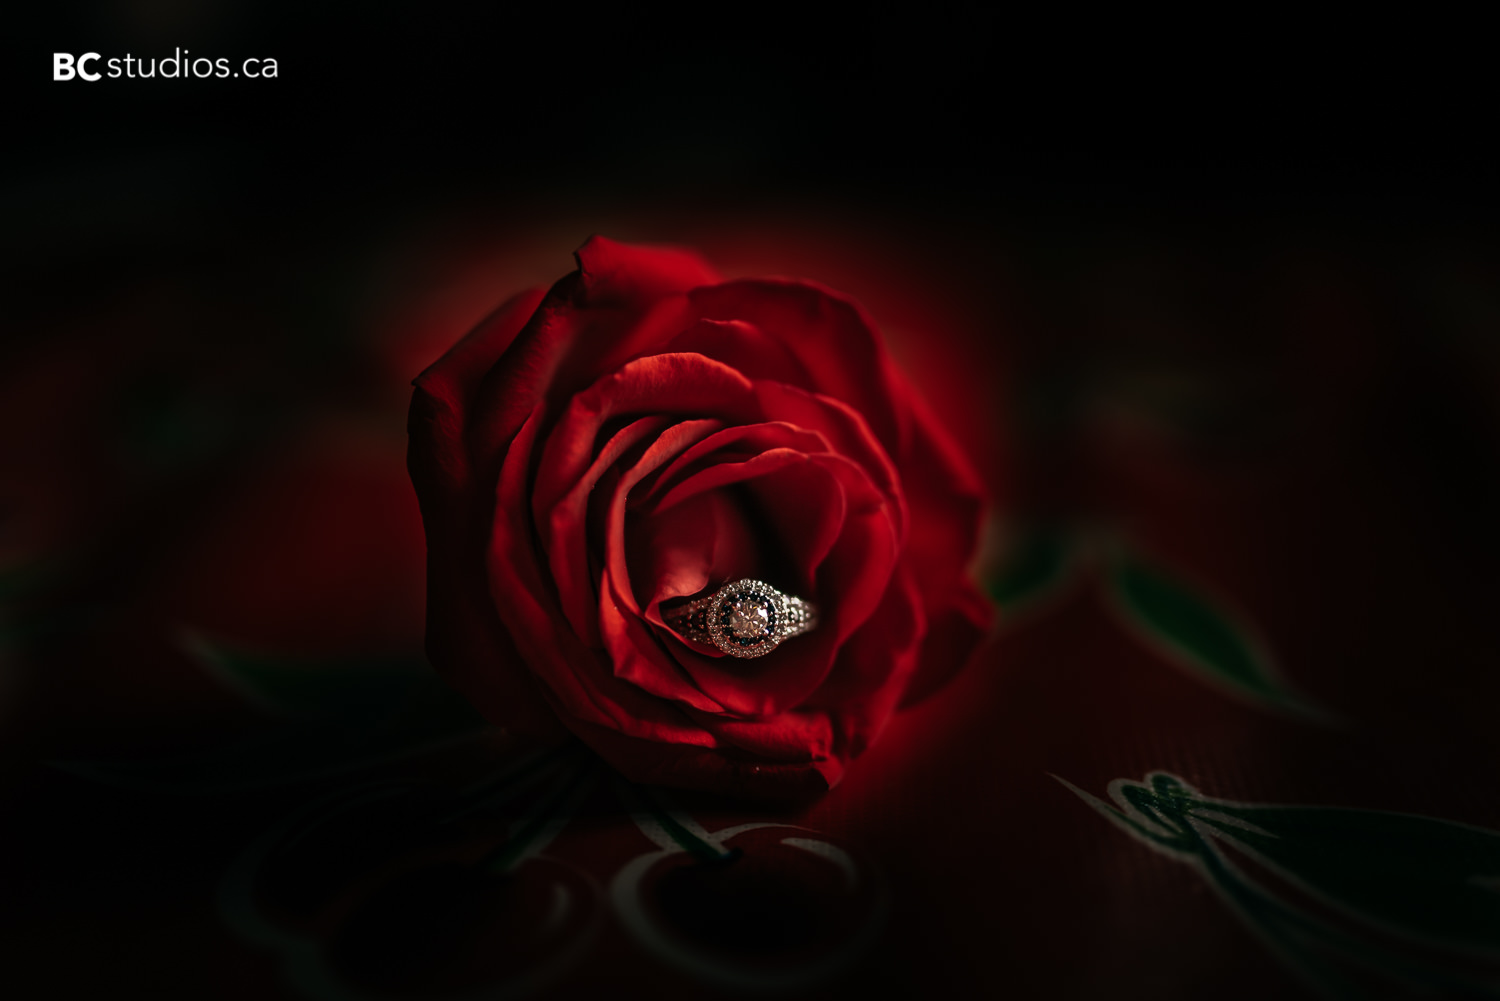 ring shot rose beauty and the beast